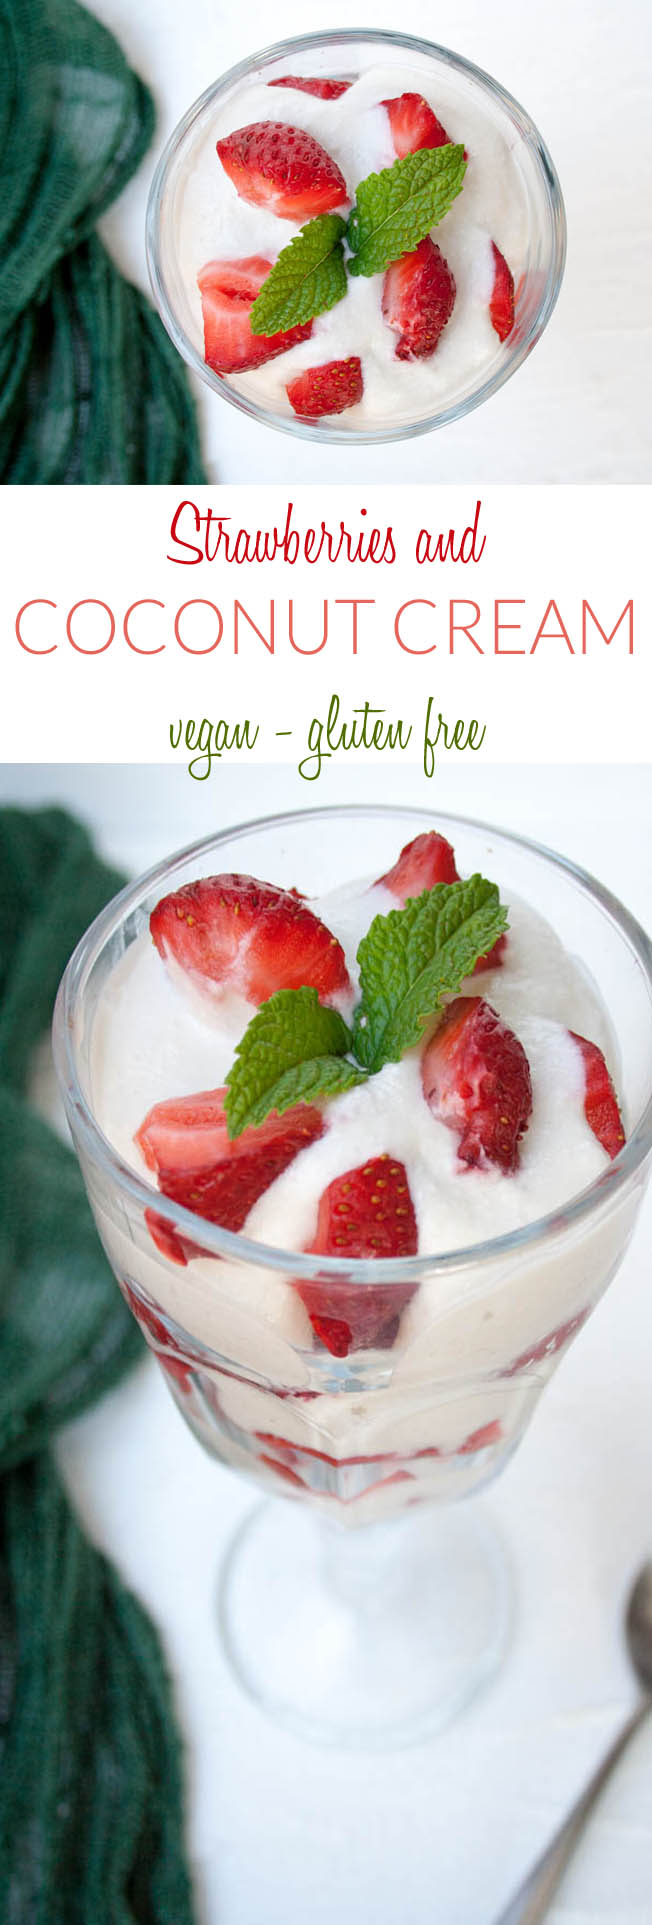 Strawberries and Coconut Cream (vegan, gluten free) - This easy dessert will make you feel like you are indulging, but it is really quite healthy!